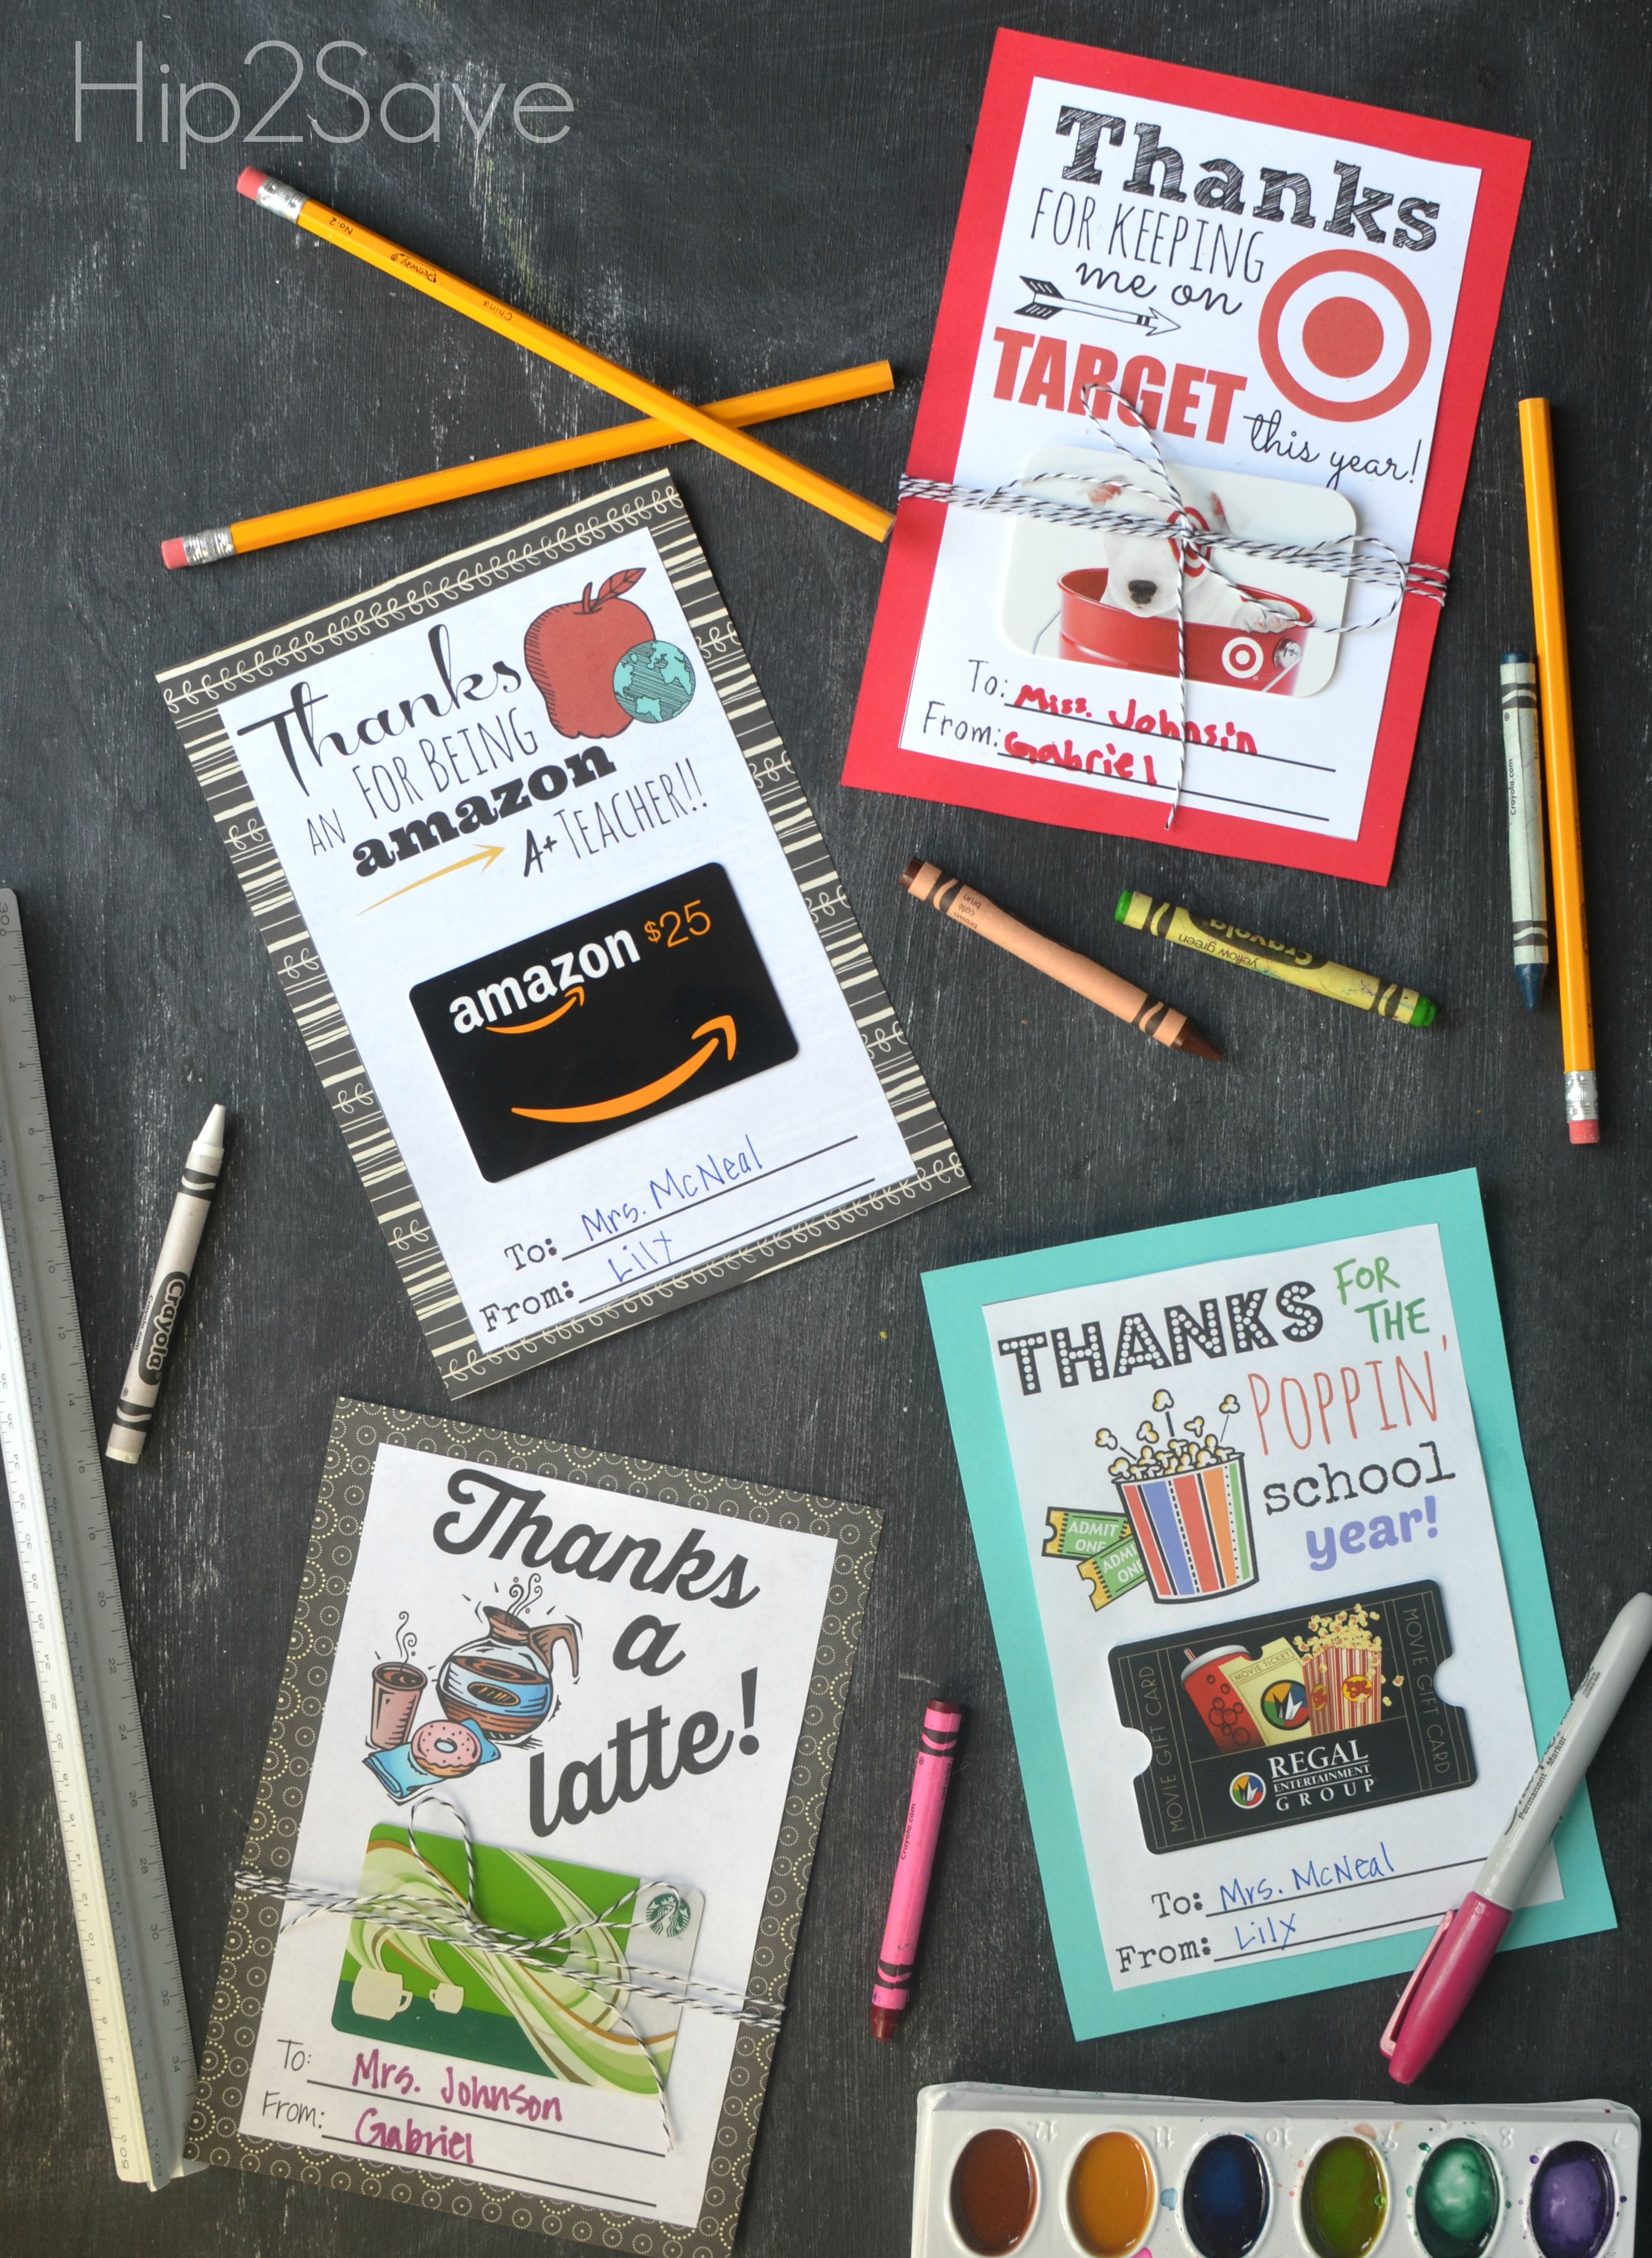 FREE Printable Gift Card Holders for Teacher Gifts - Hip2Save #teachergifts